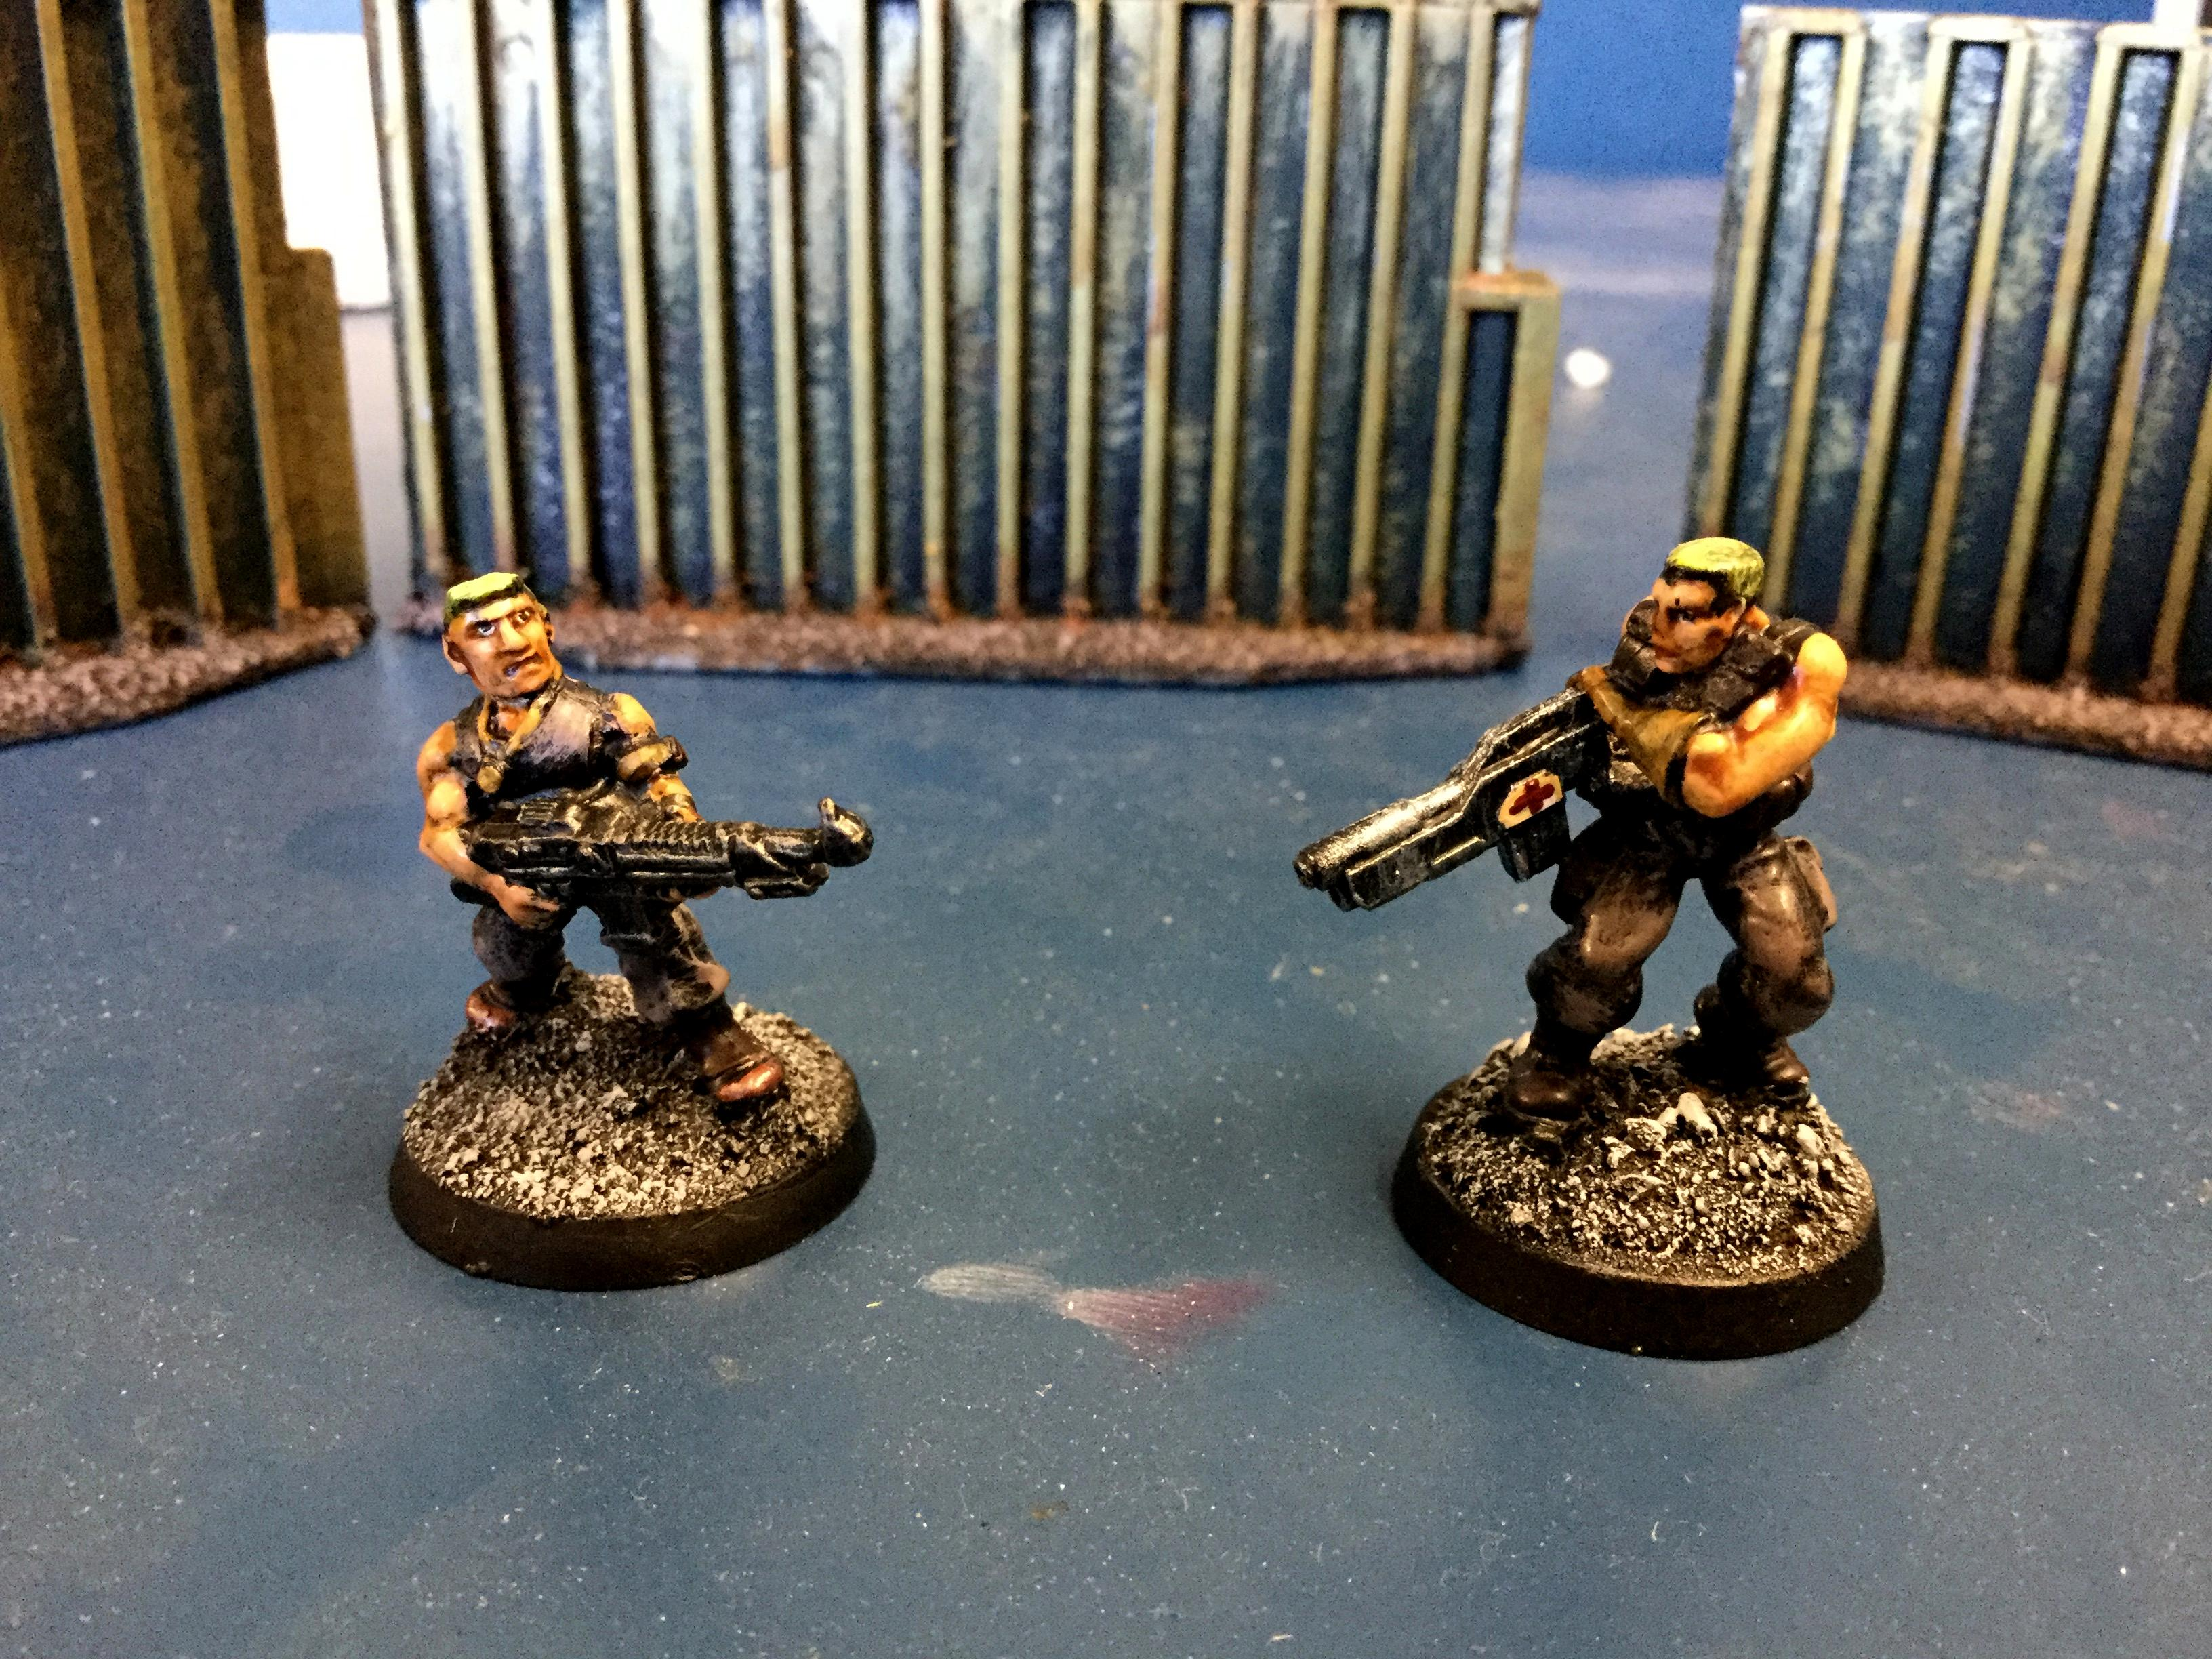 Two imperial guardsmen